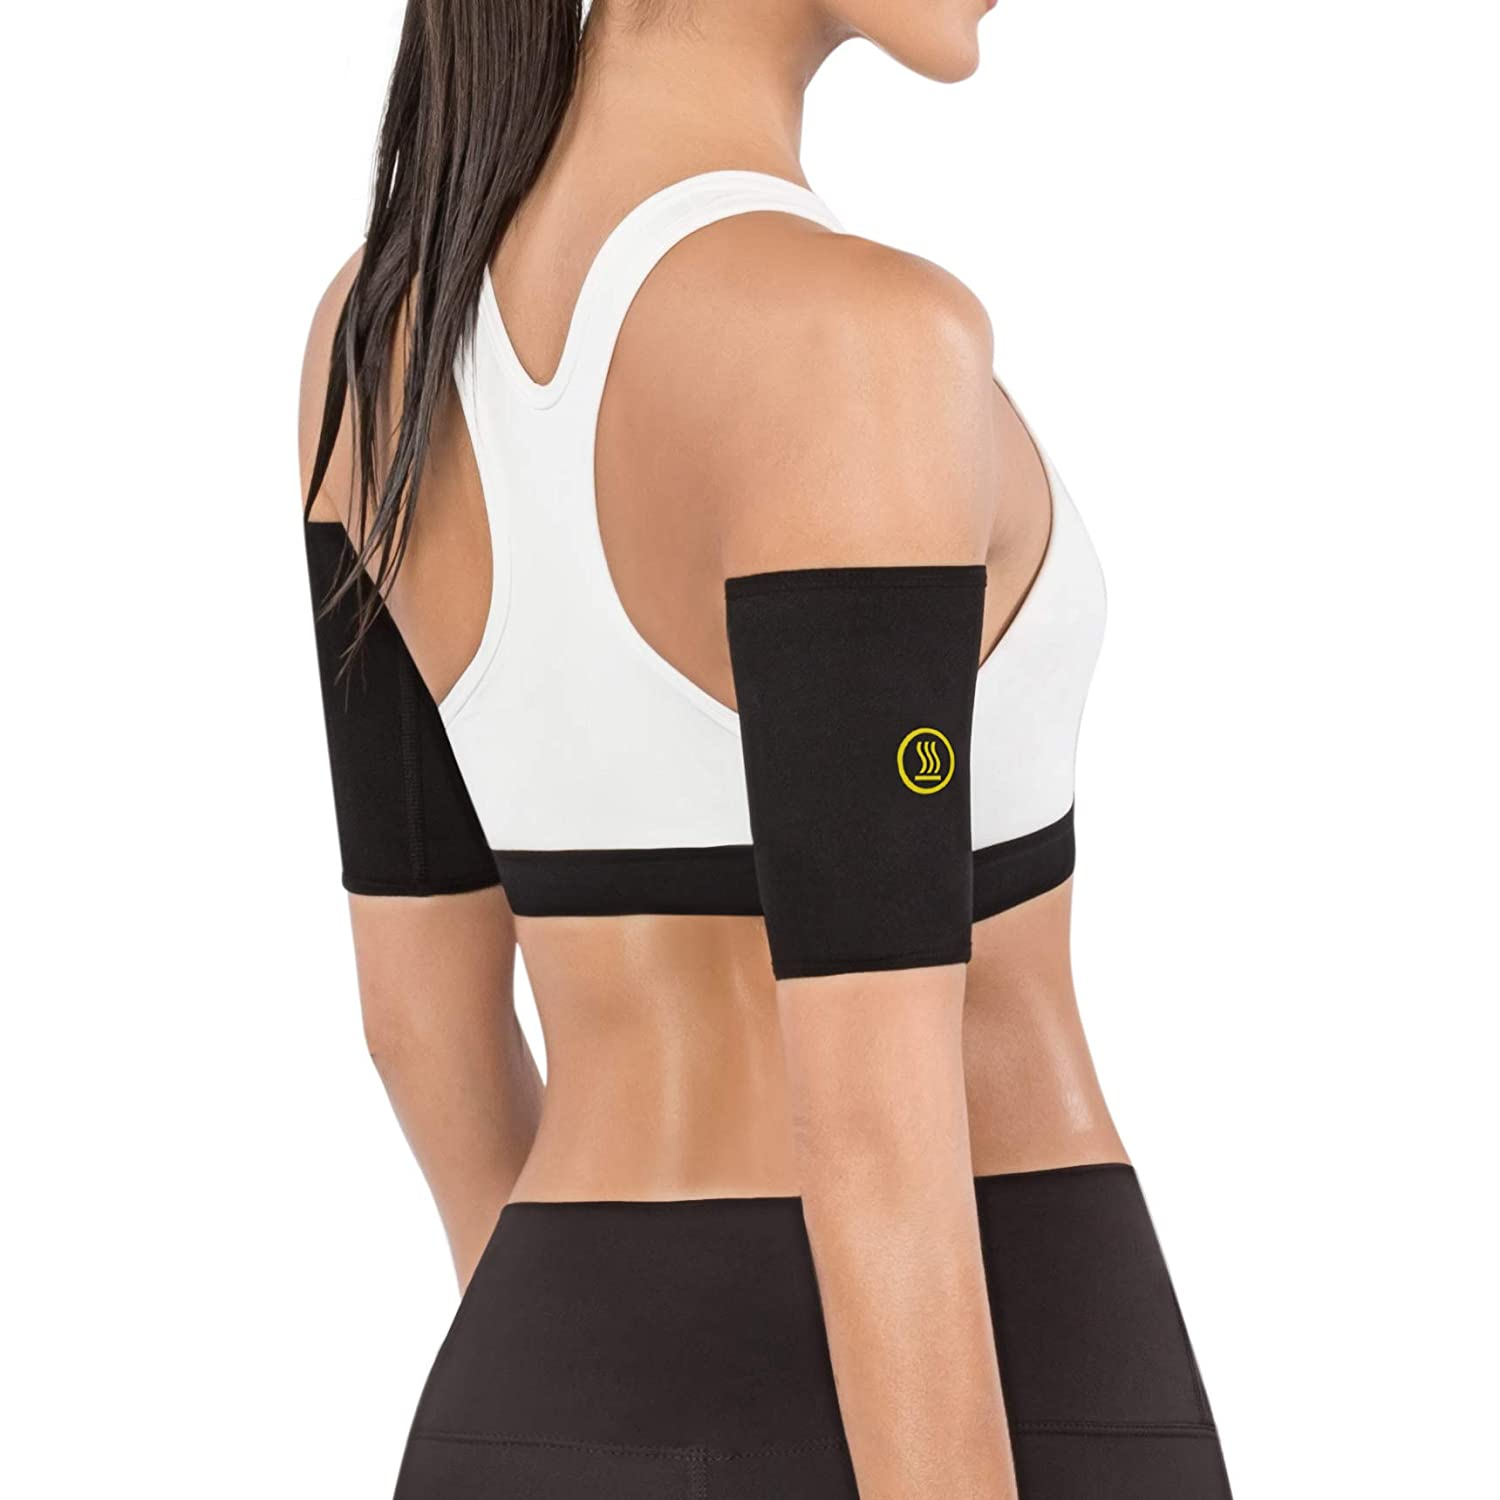 cd7670ba42 Amazon.com : Hot Shapers Hot Arms Sleeves - Seamless Arm Trimmers with  Phone Pocket for Running : Sports & Outdoors